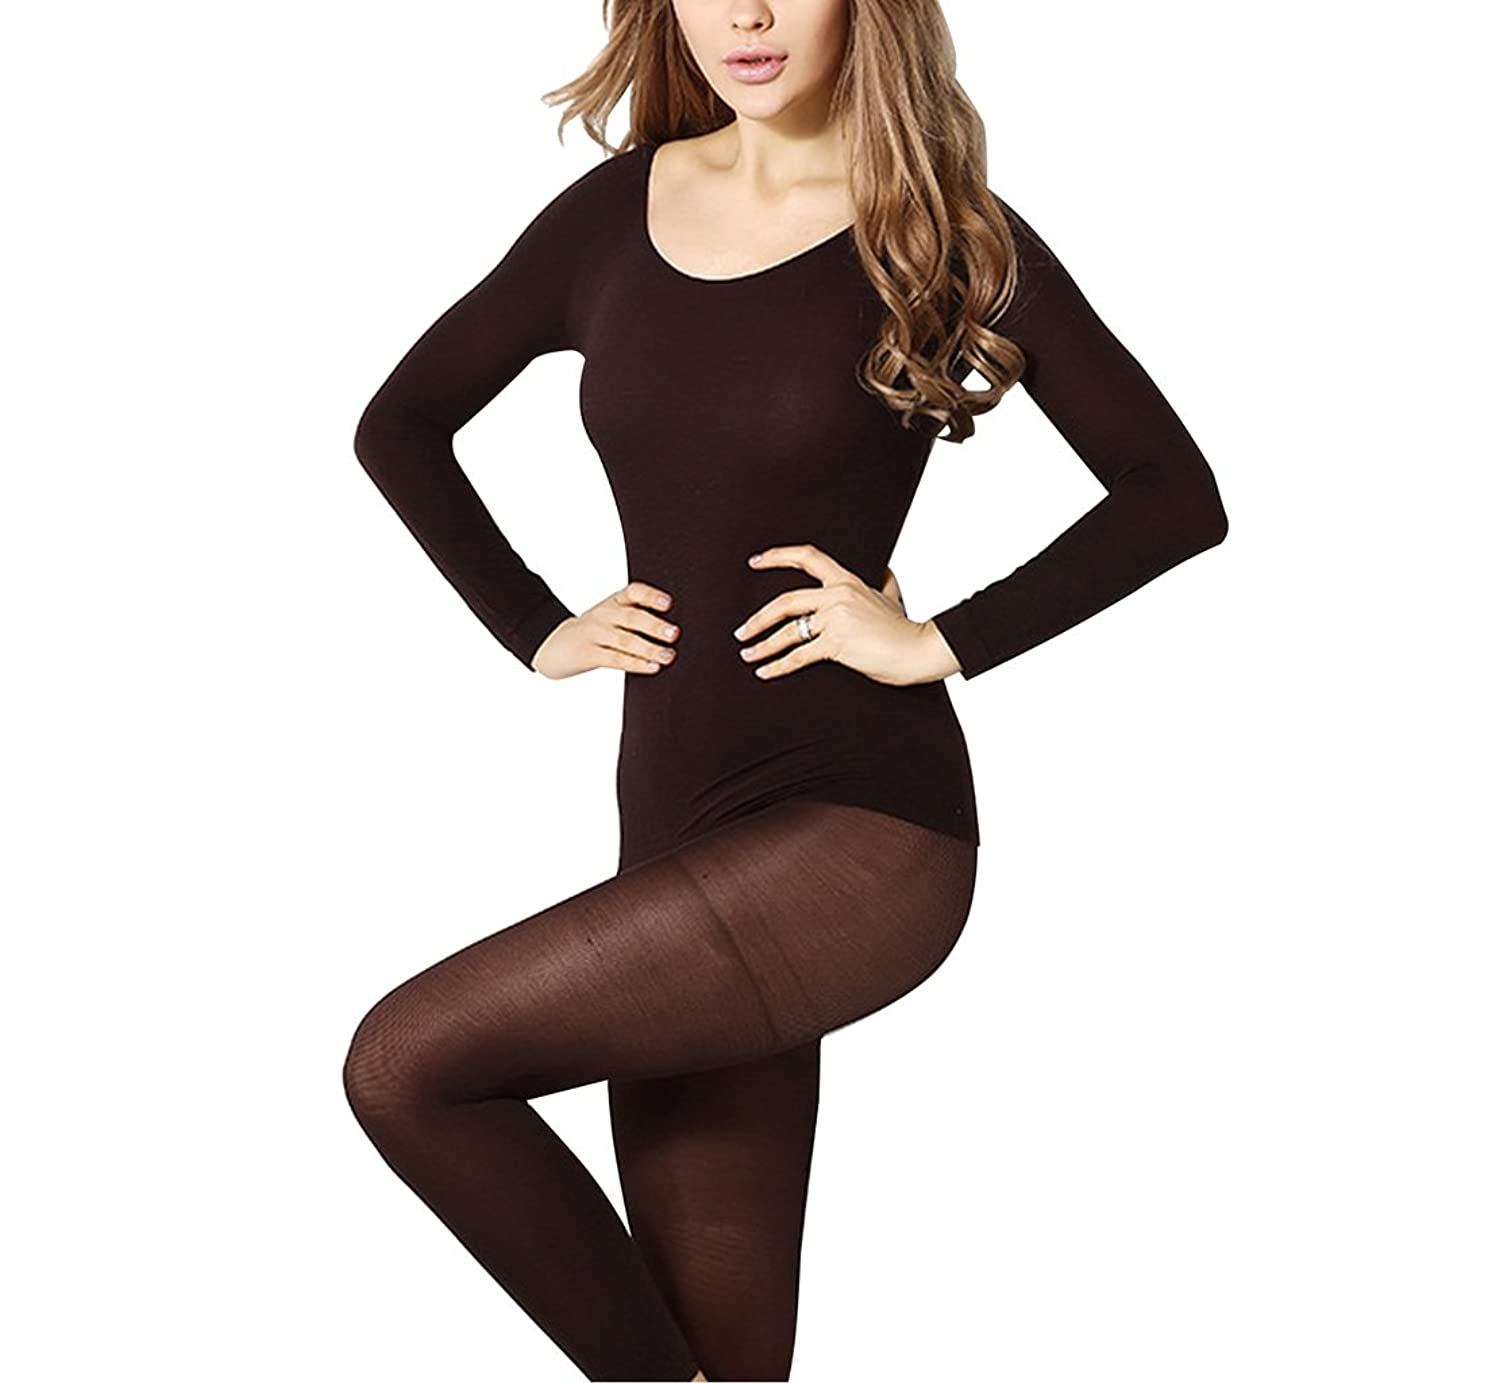 Women's Thermal Underwear Union Suits Inexpensive Ultrathin Top & Bottom